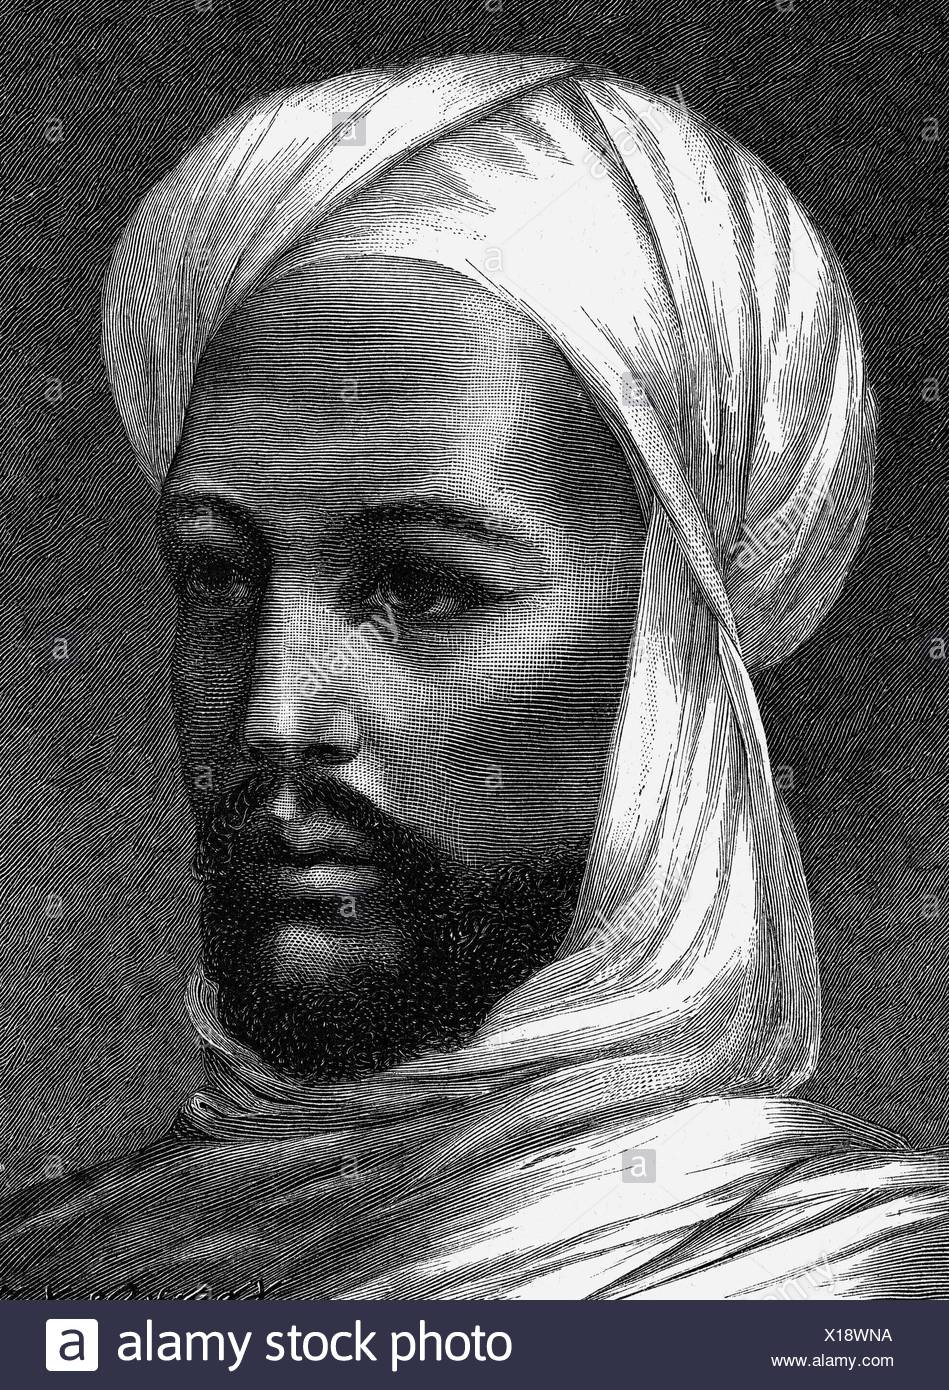 Muhammad Ahmad bin Abd Allah, 12.8.1844 - 22.6.1885, Sudanese insurgent, portrait, wood engraving, 19th century, Additional-Rights-Clearances-NA - Stock Image